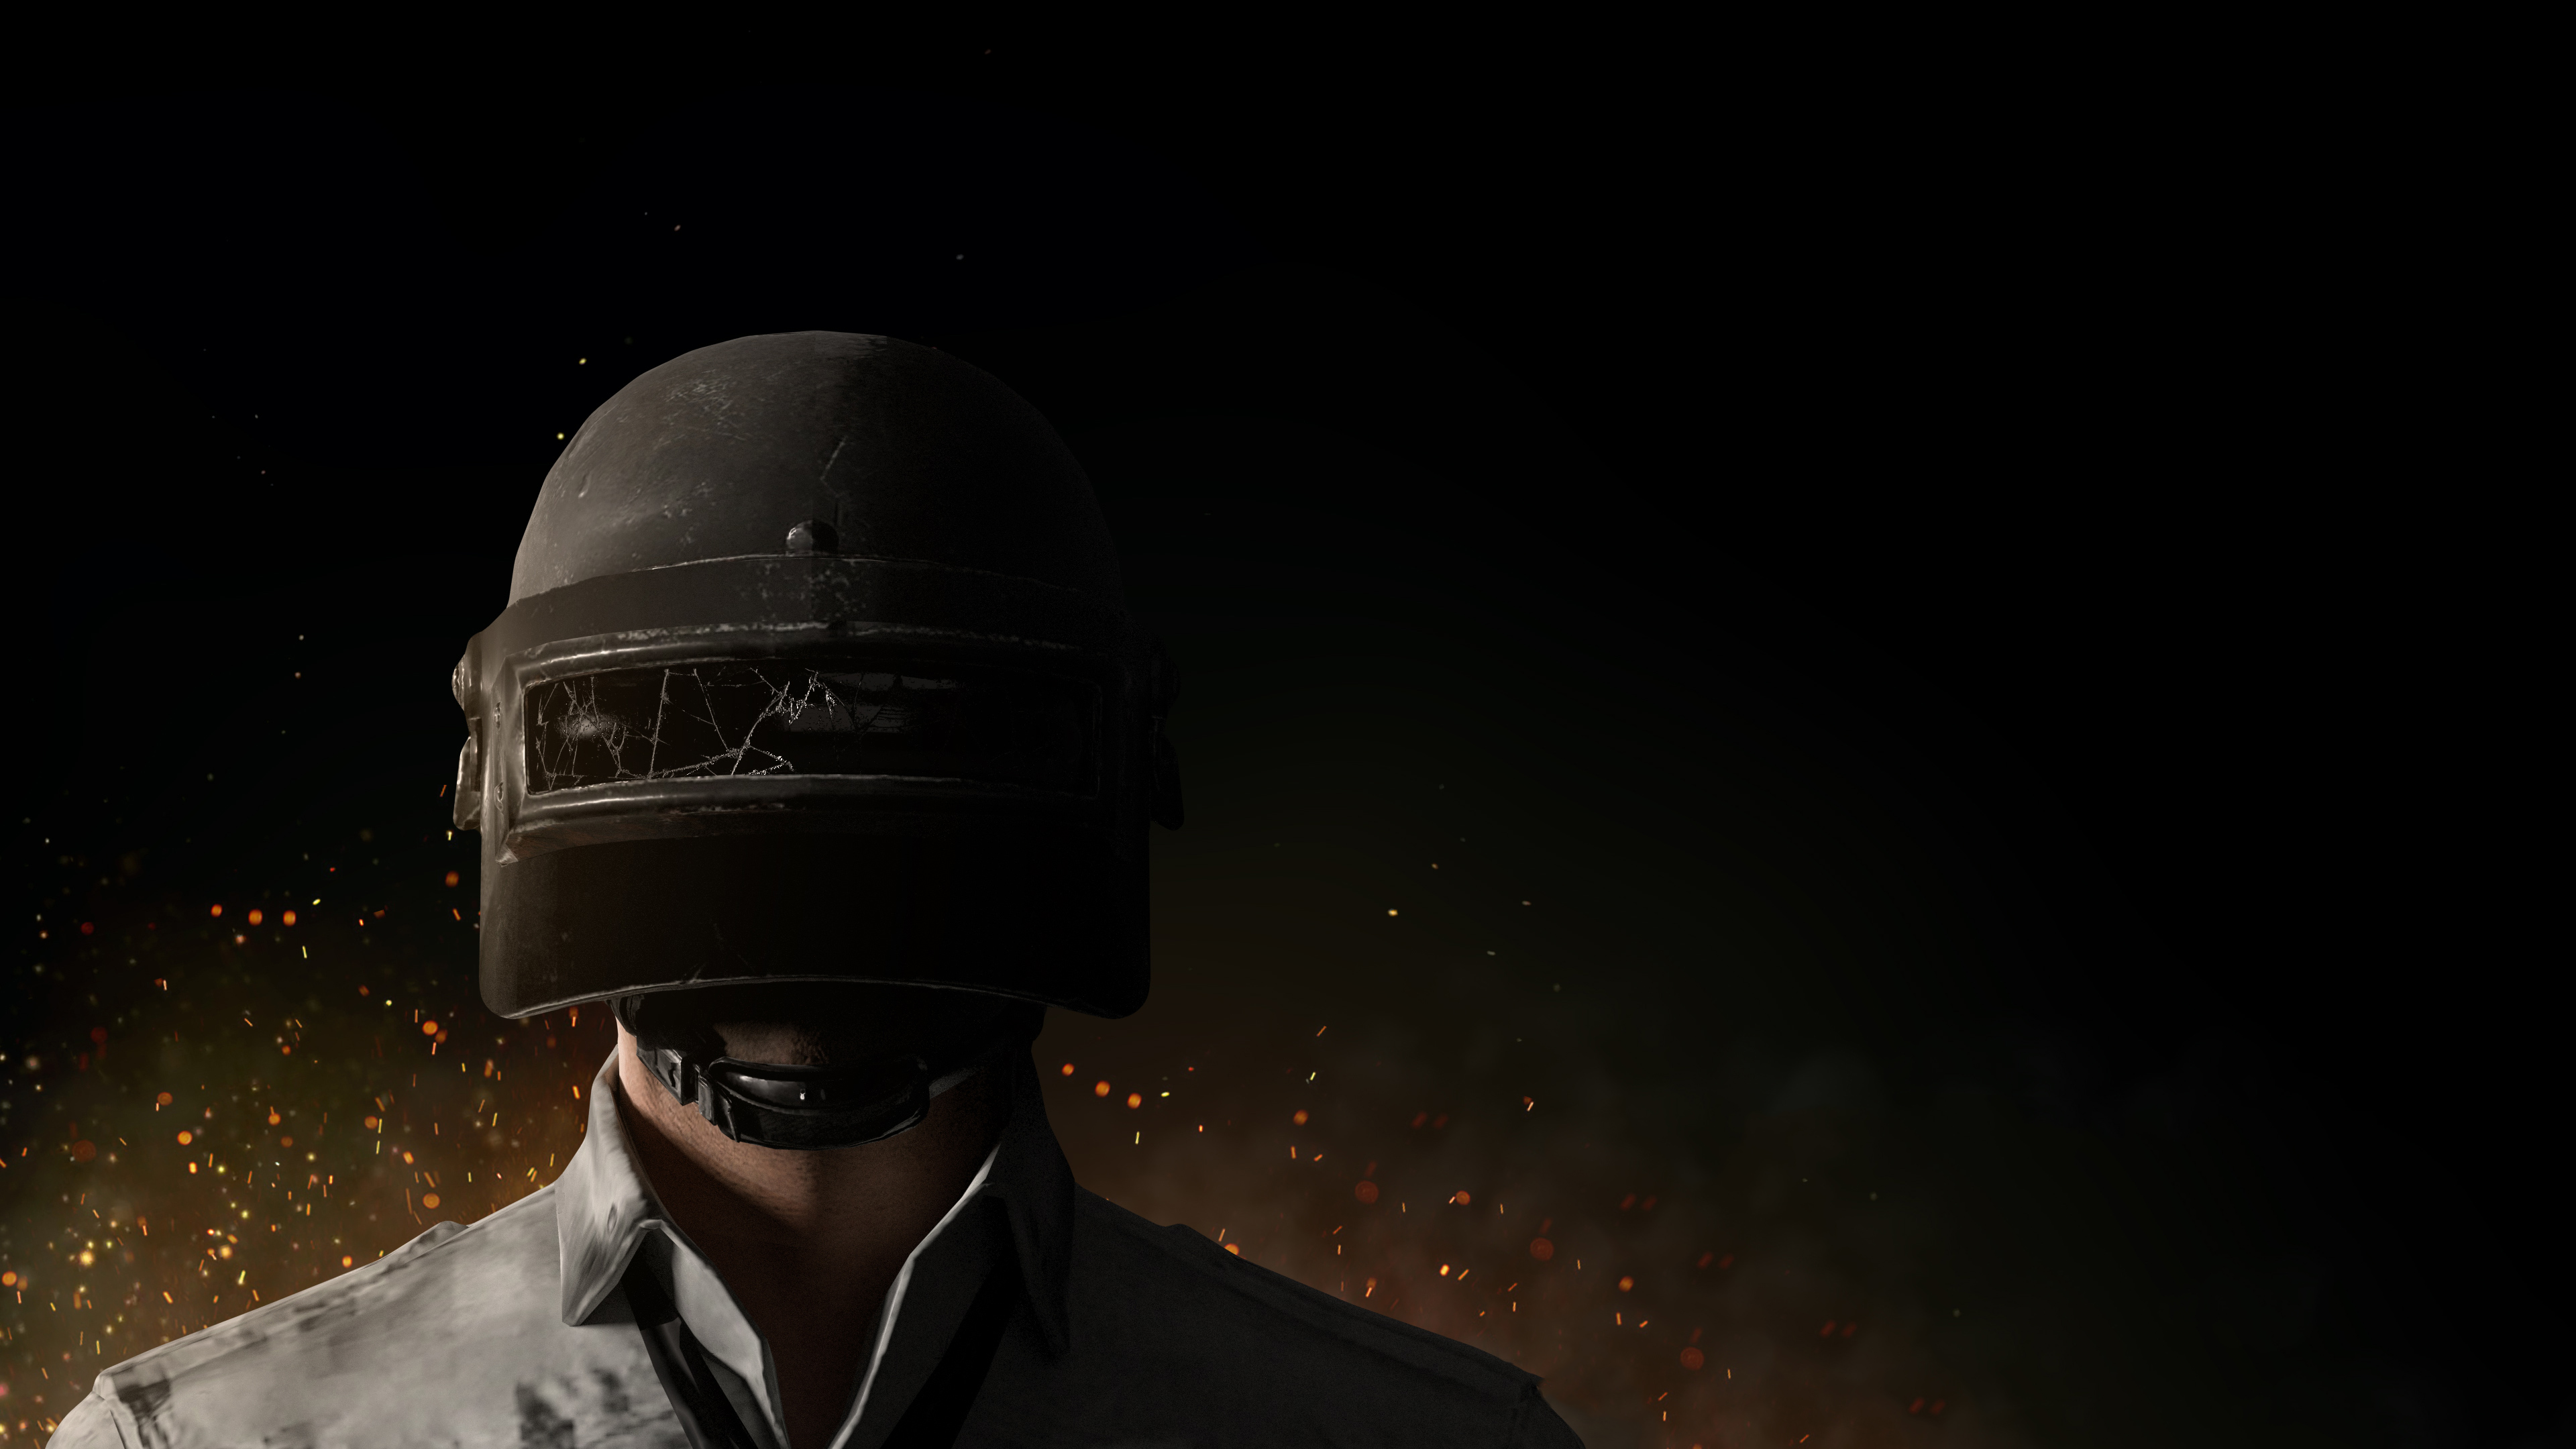 1920x1080 Pubg Artwork 4k Laptop Full Hd 1080p Hd 4k: PUBG Helmet Guy 4k, HD Games, 4k Wallpapers, Images